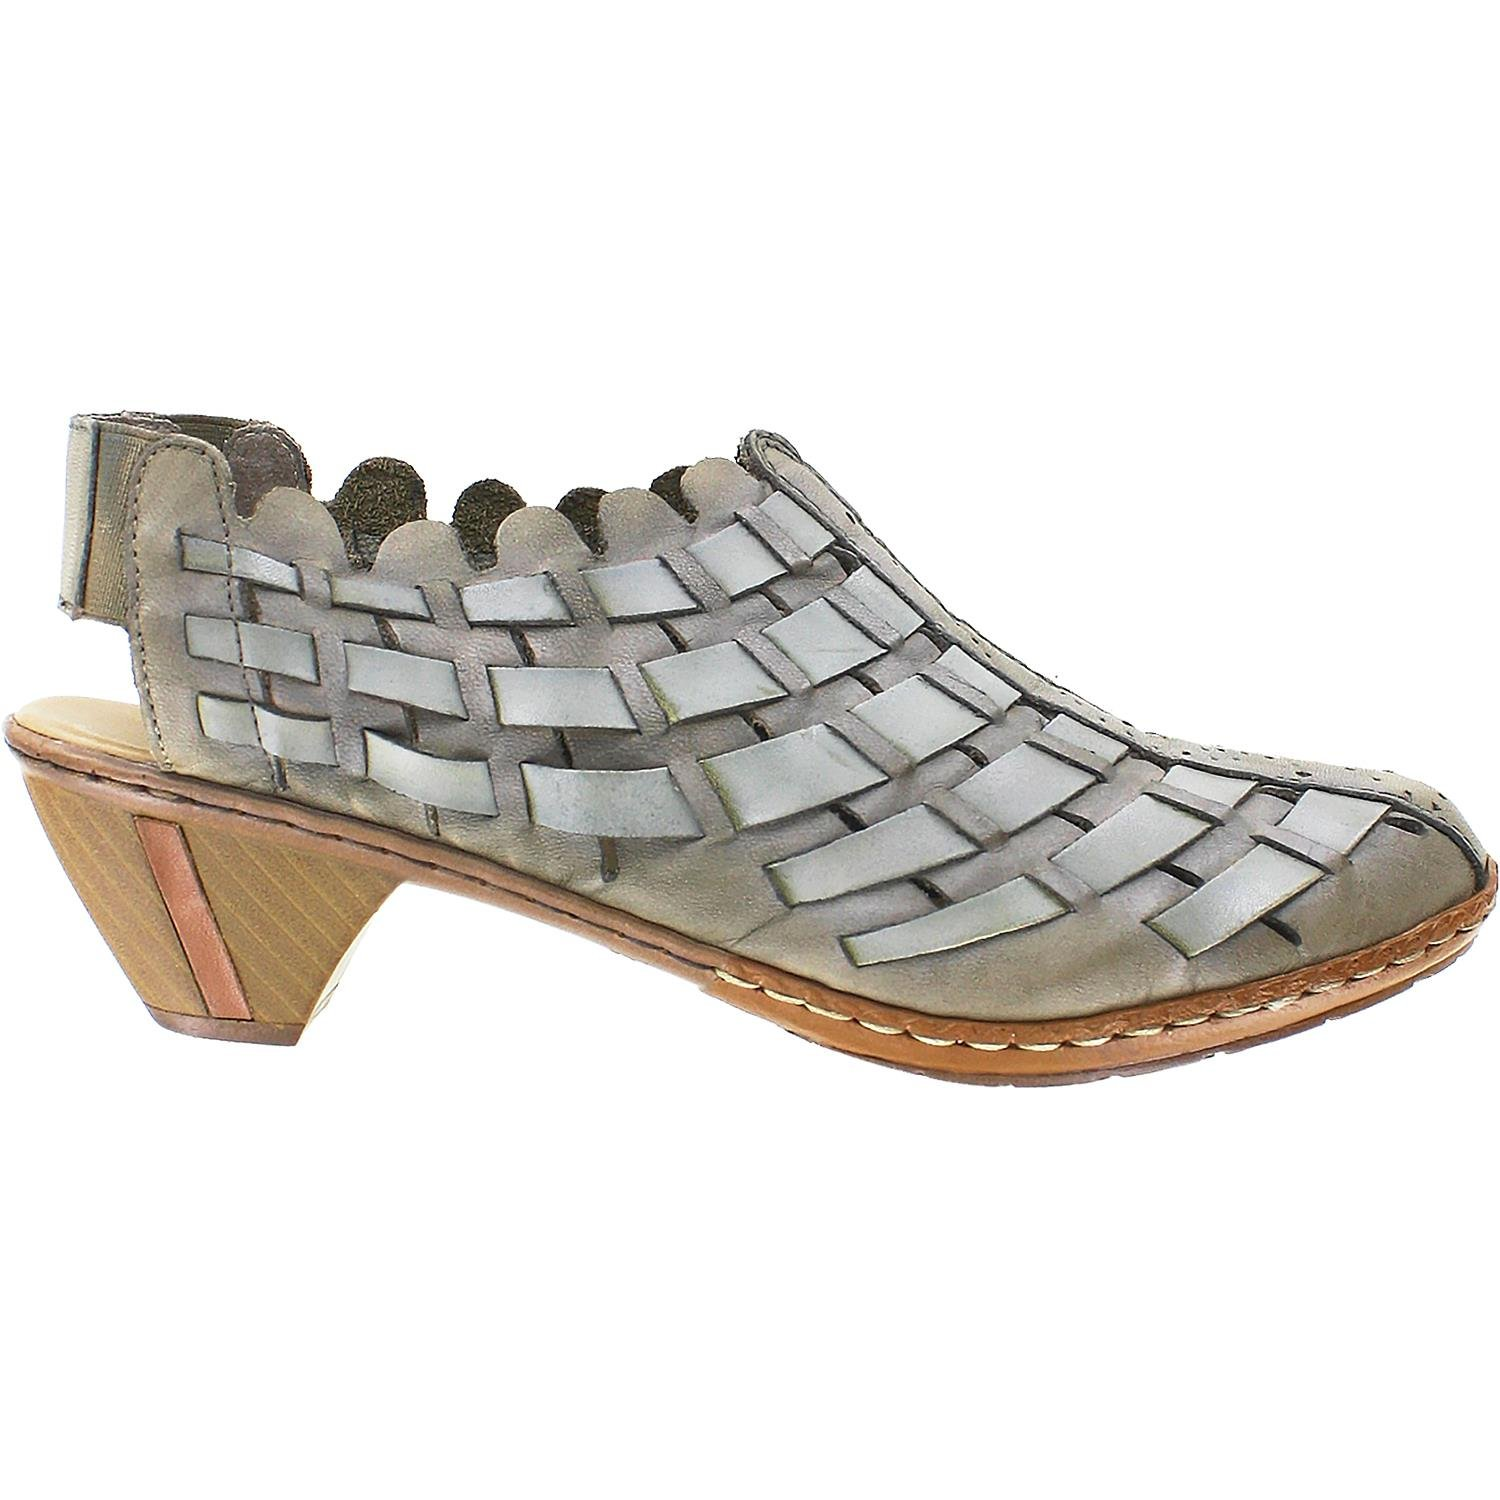 Women's Rieker, Sina woven leather casual style TAUPE 42 M by Rieker